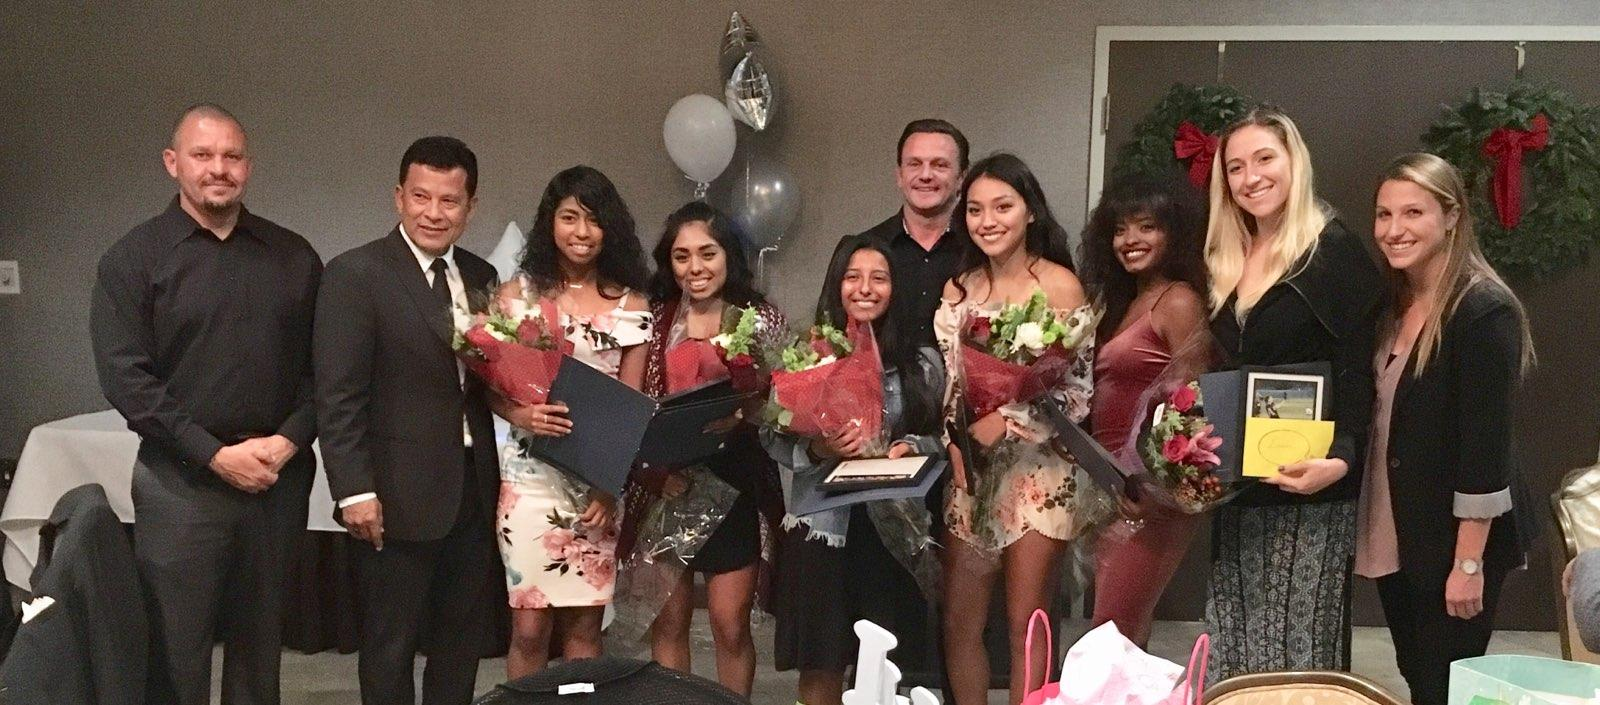 Women's soccer team honors 2017 players at banquet